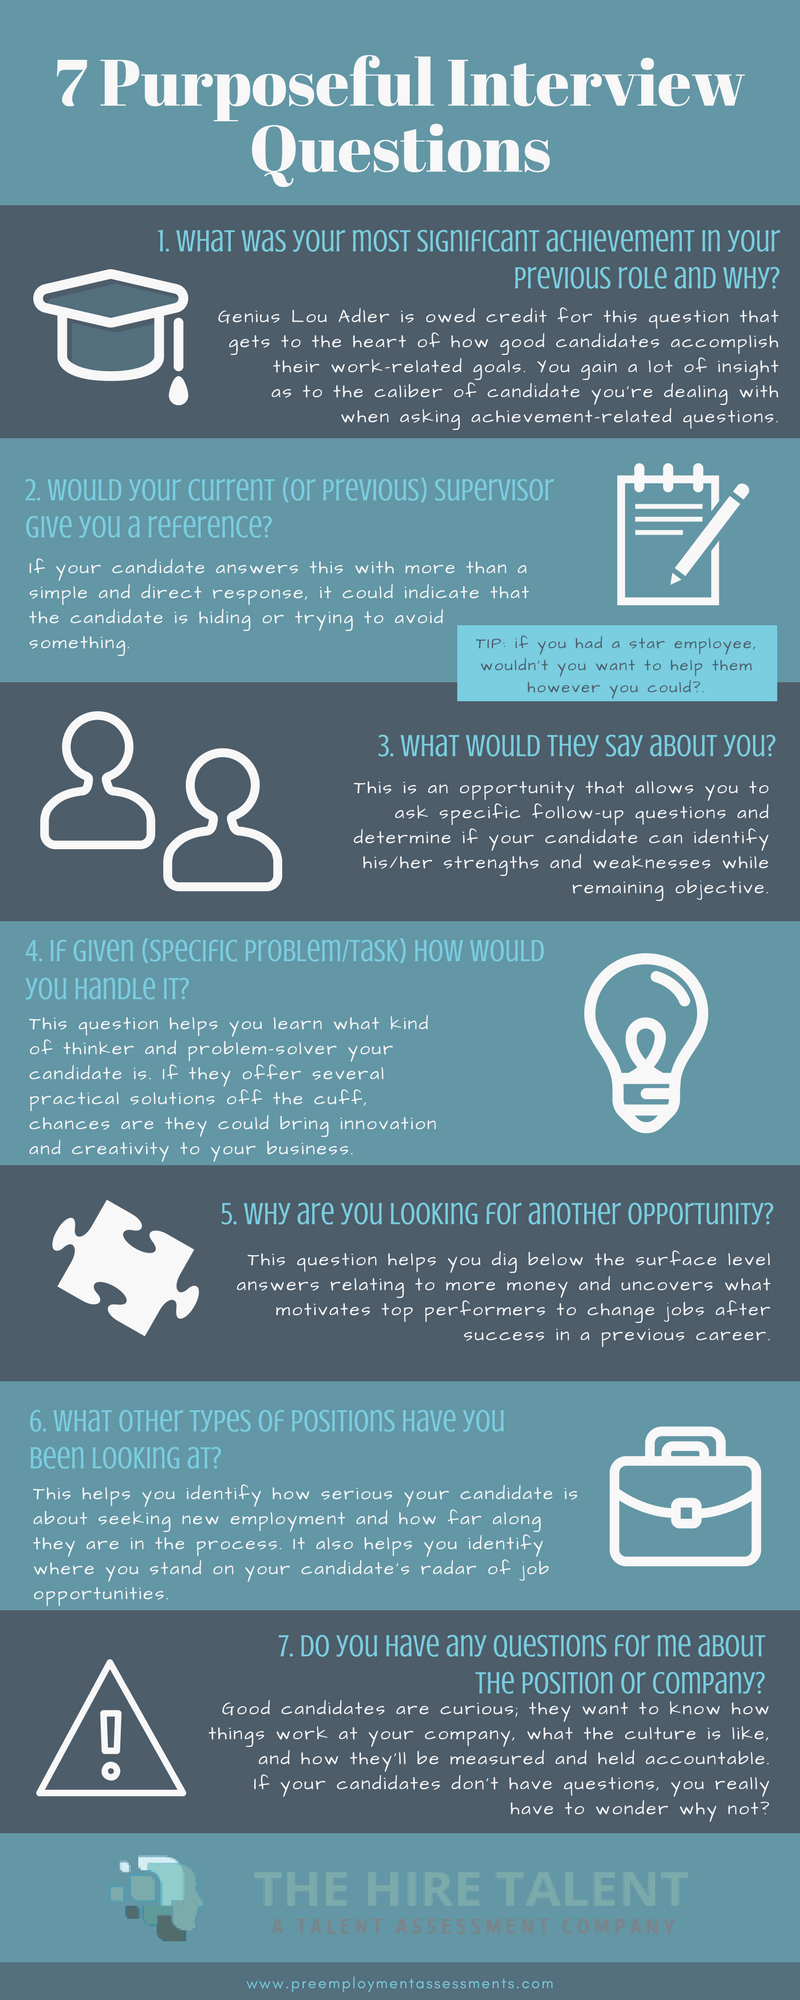 7 Purposeful interview questions